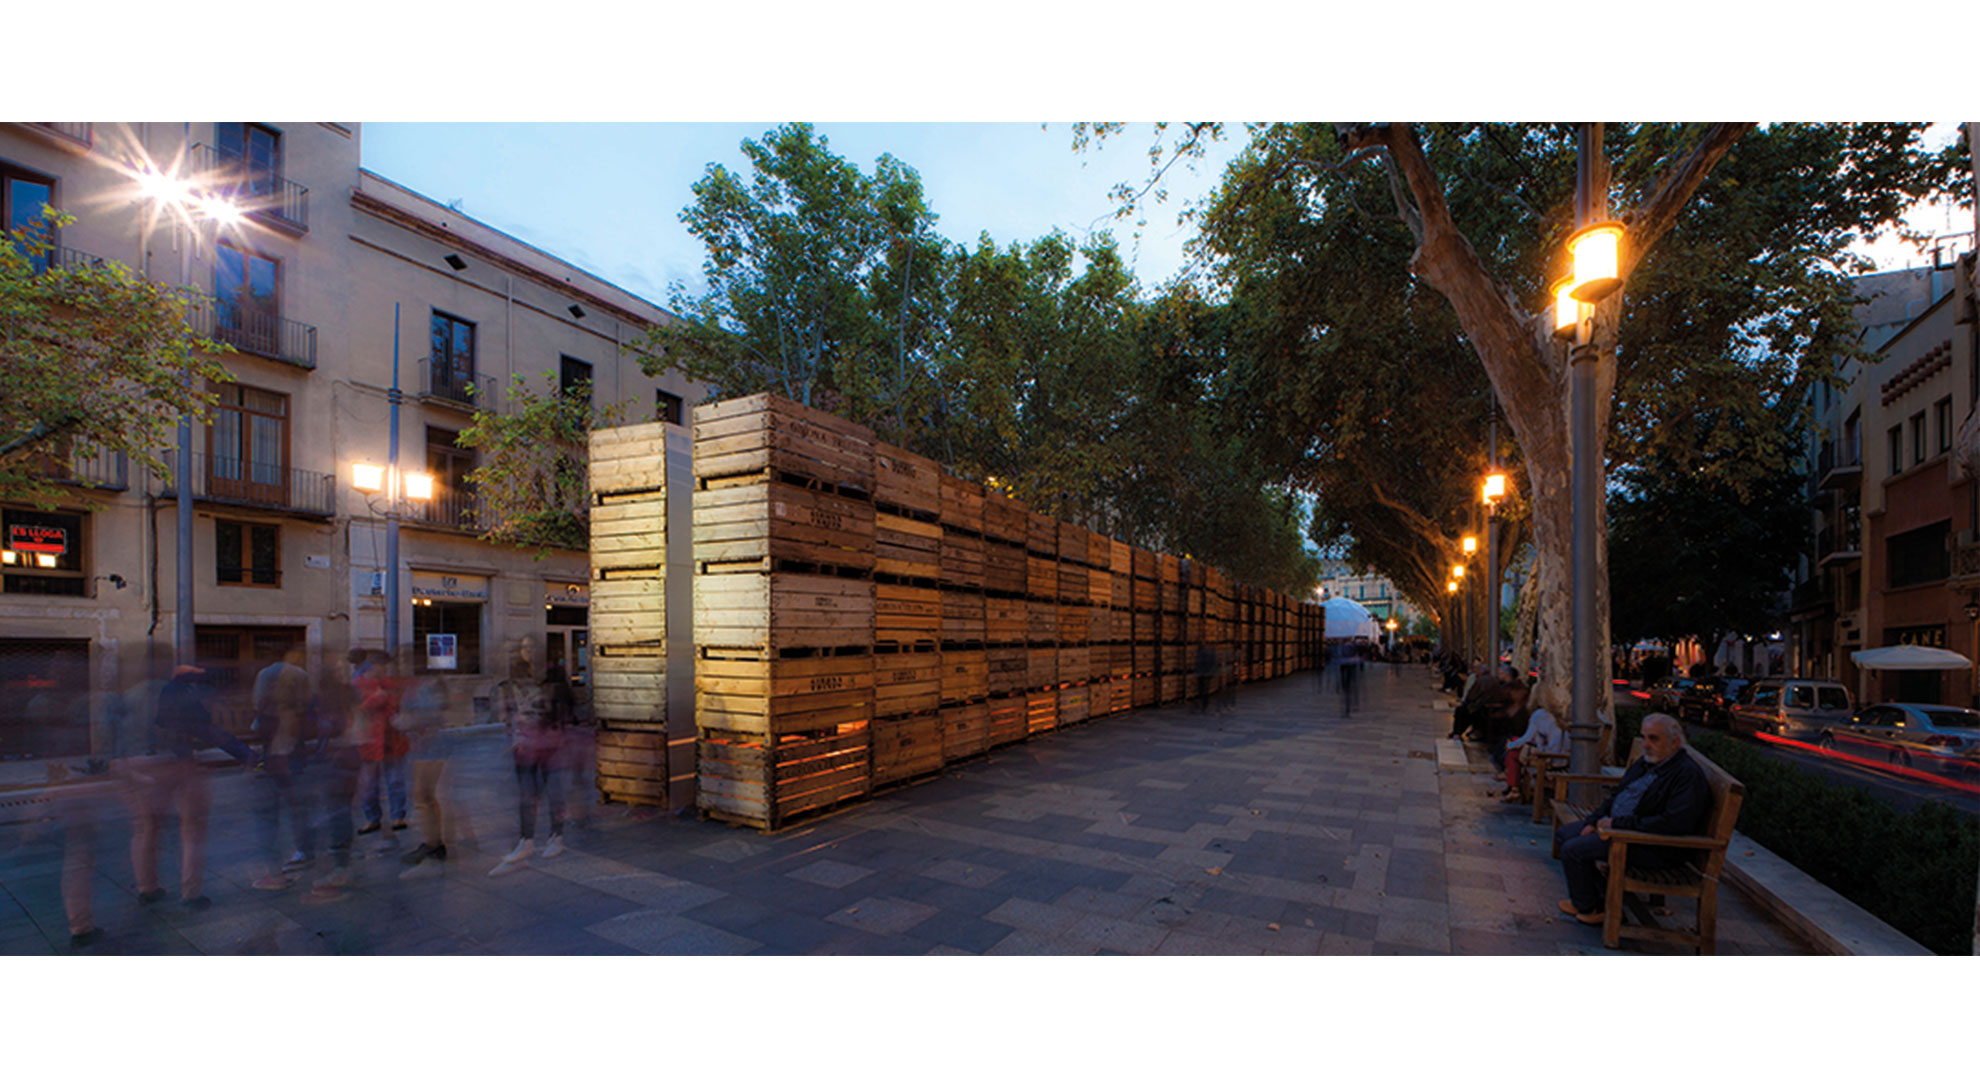 Art and ephemeral architecture in Figueras (Girona, Spain).